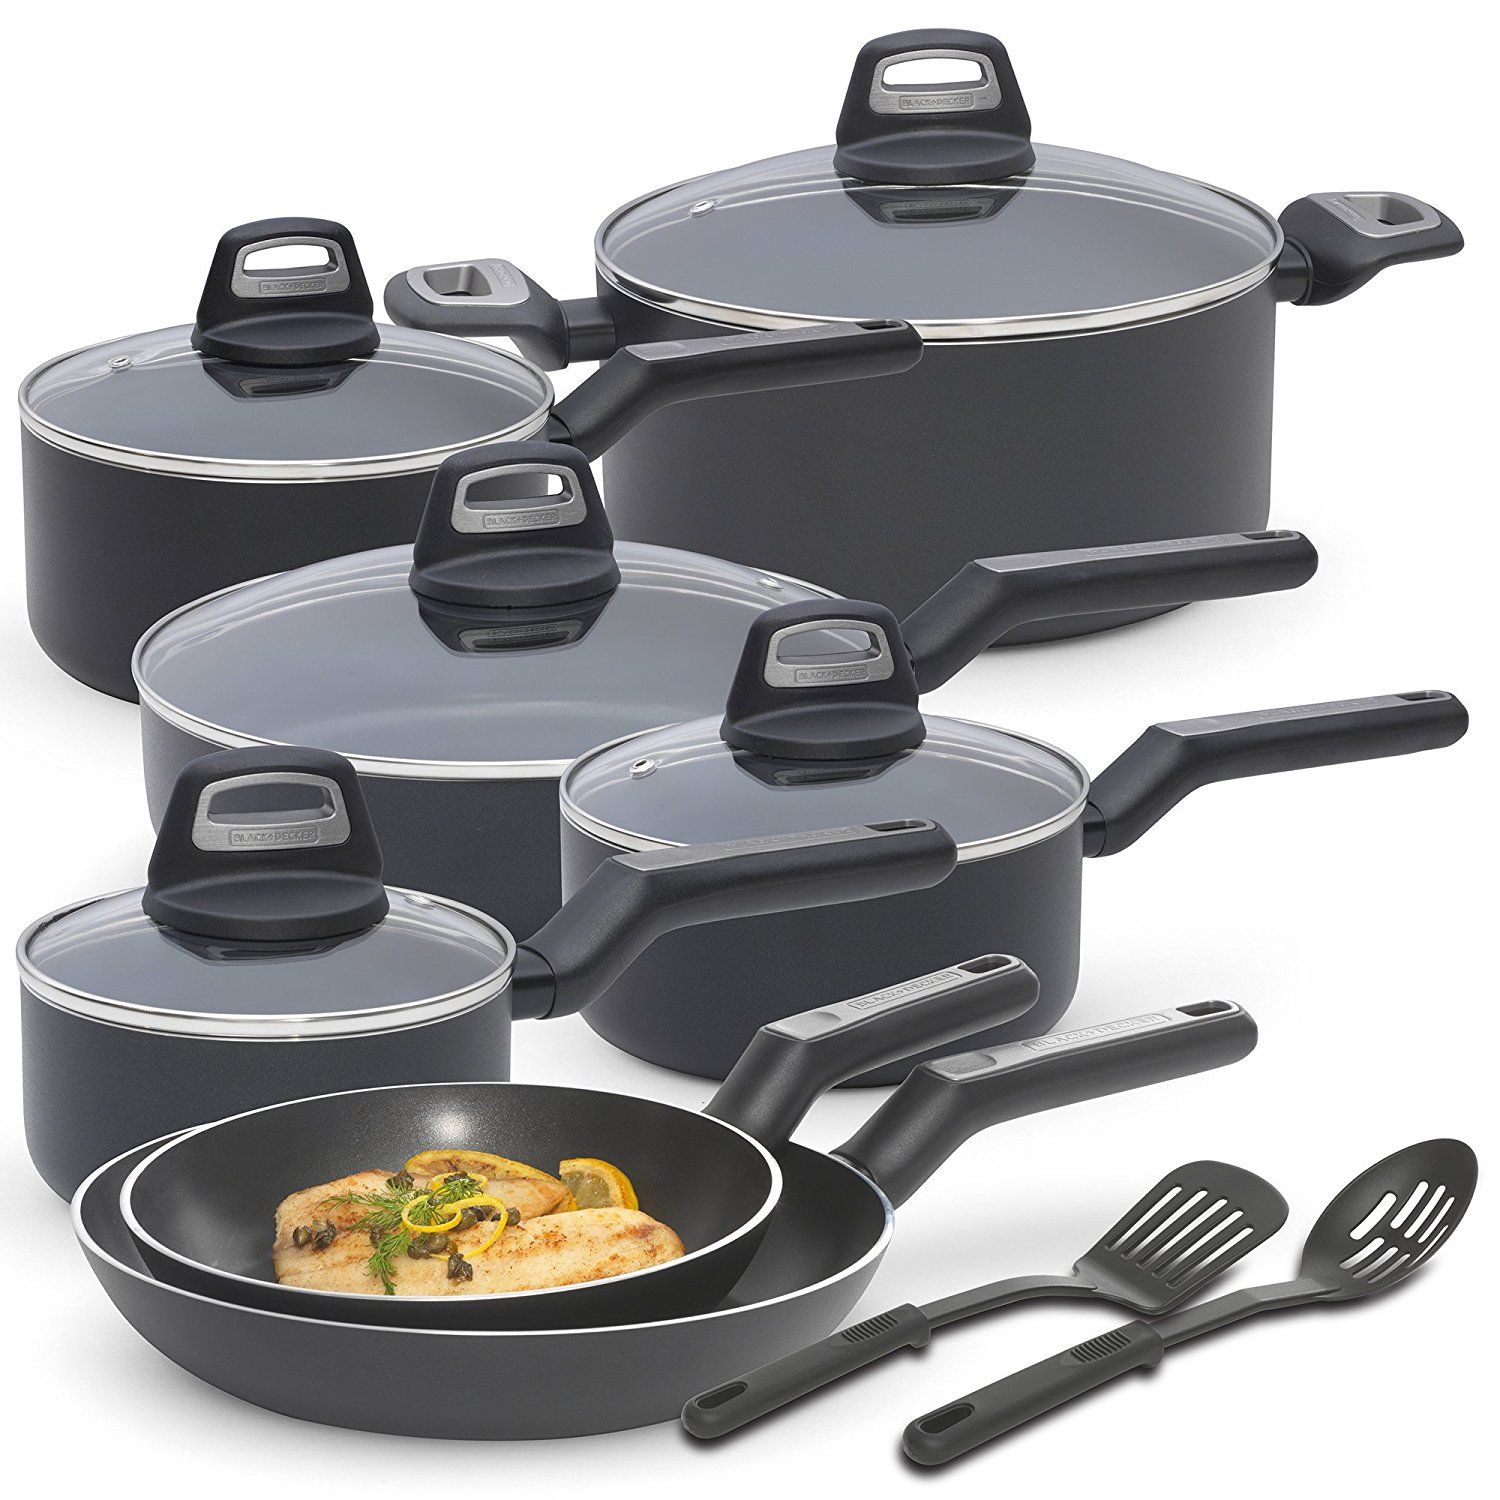 BLACK & DECKER 83365 14 Piece Durable Titanium Nonstick Interior Cookware Set